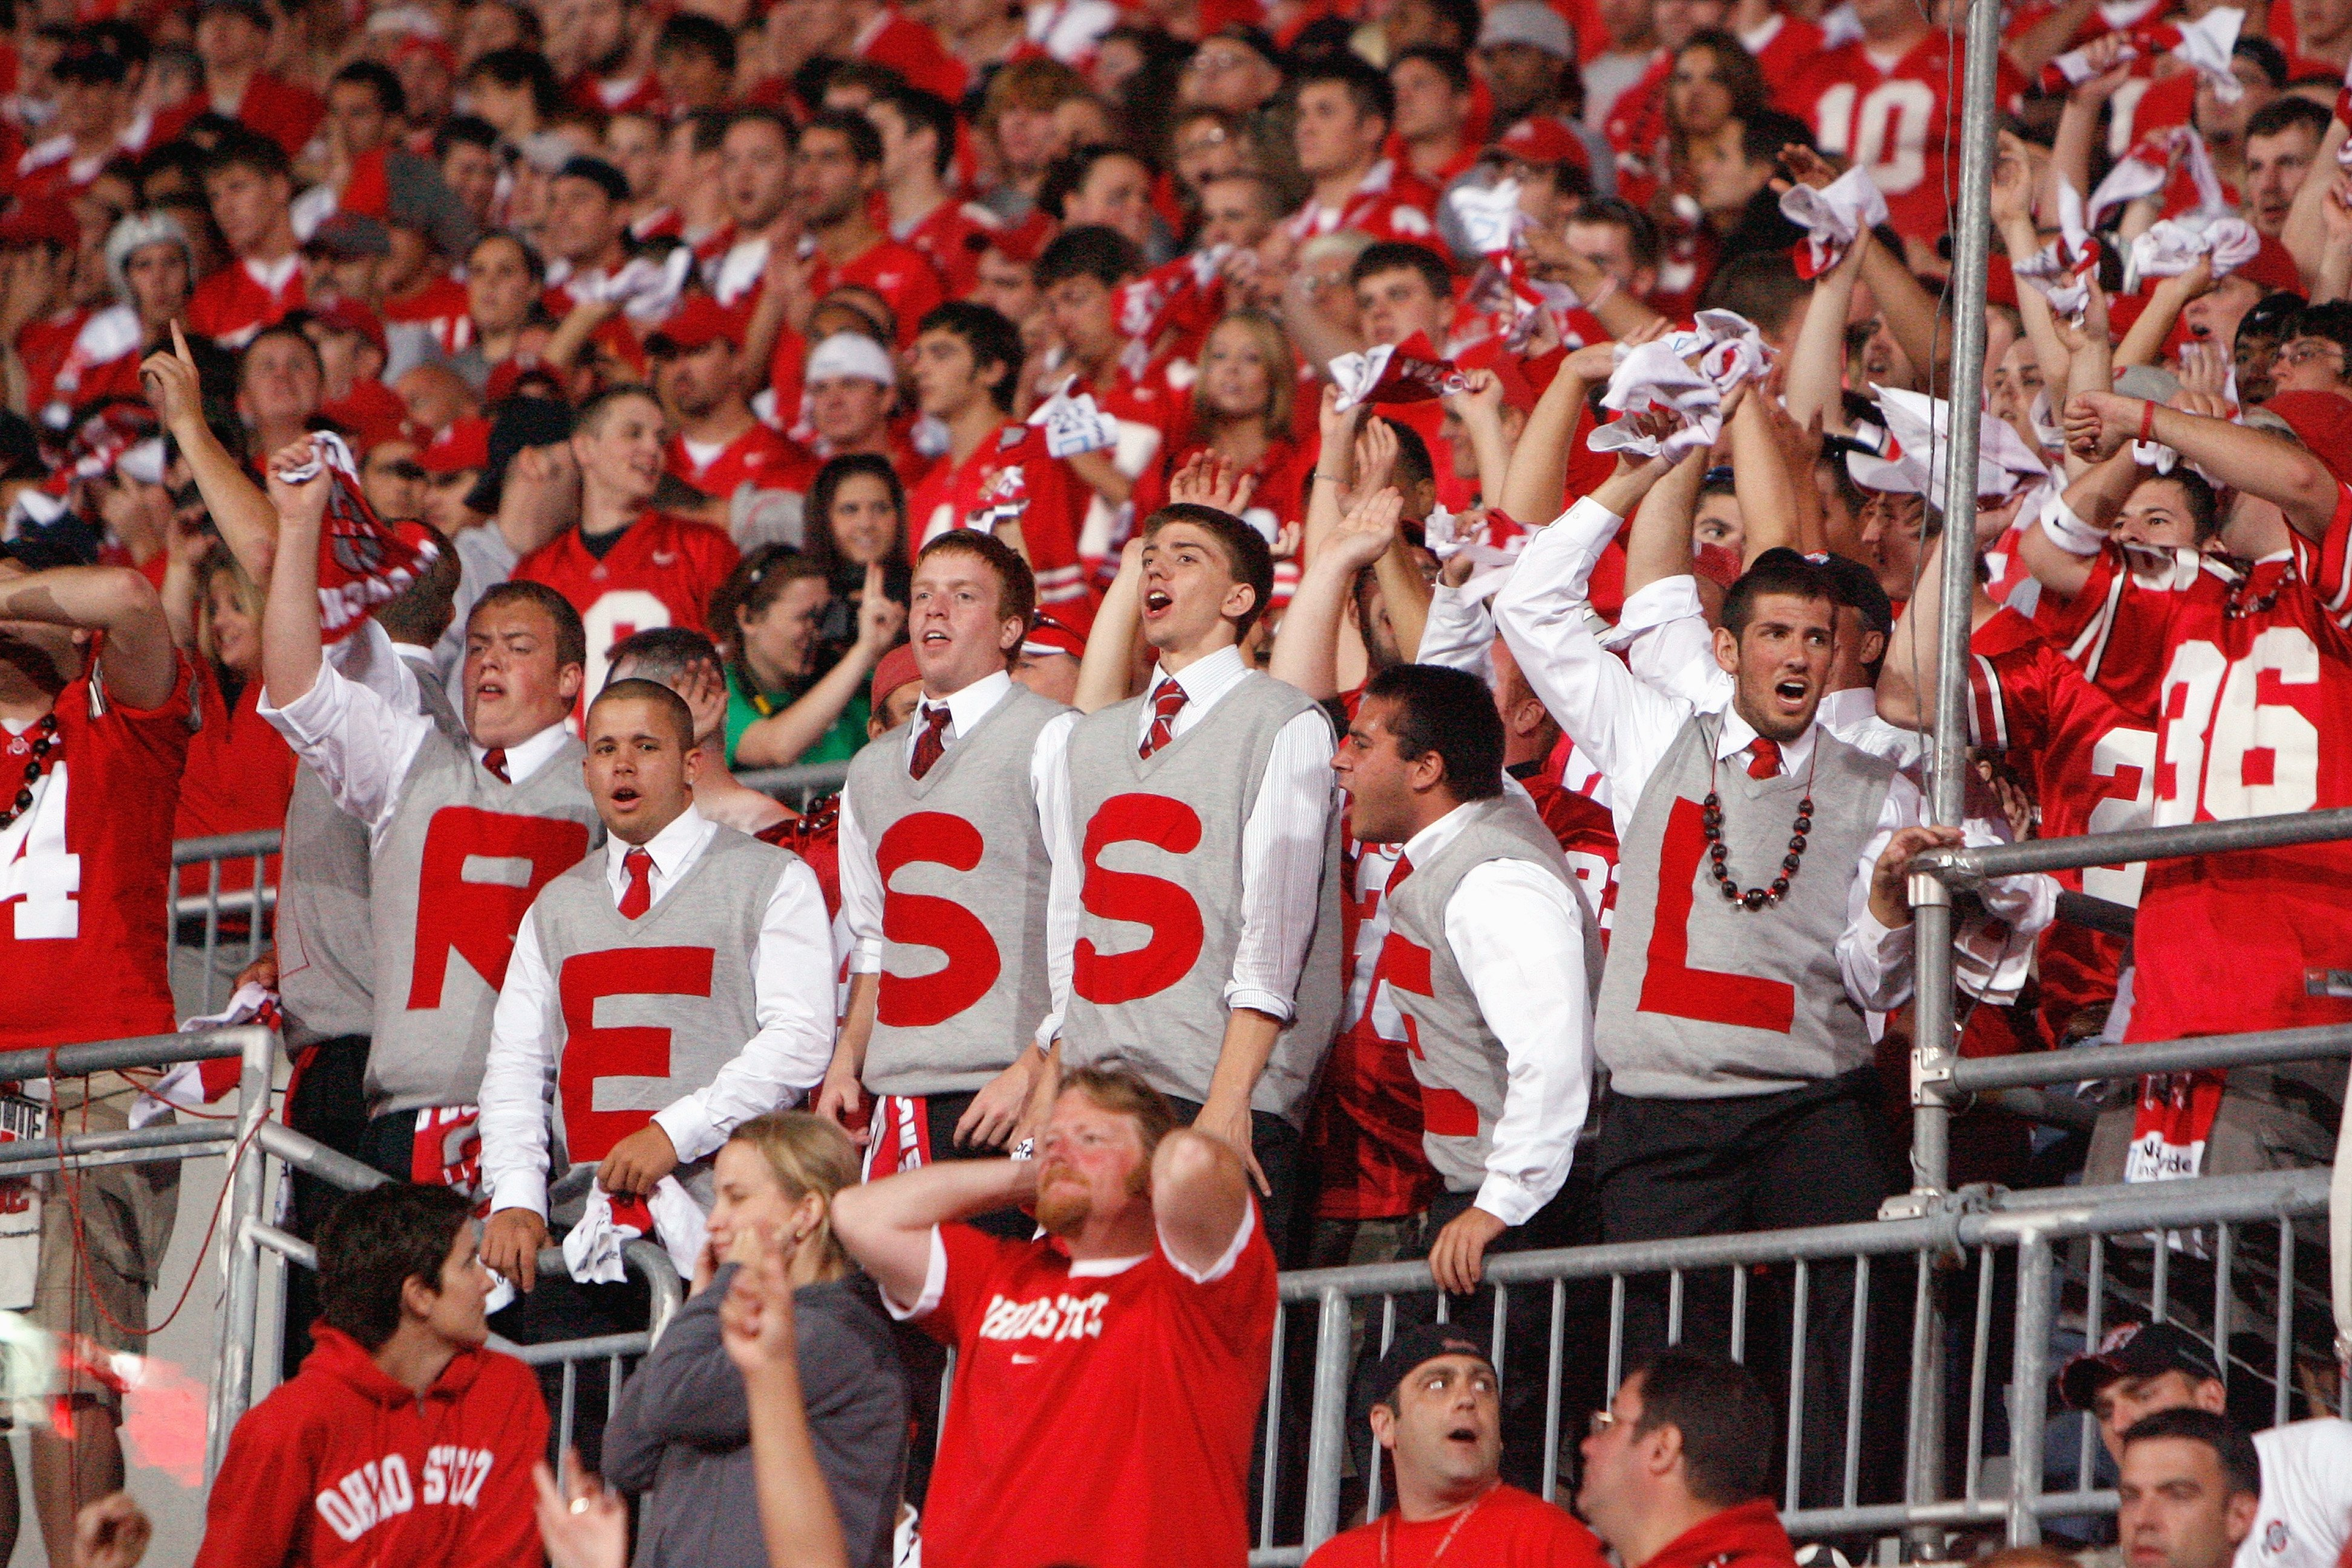 COLUMBUS, OH - SEPTEMBER 12:  Fans of the Ohio State Buckeyes cheers during the game against the Southern California Trojans on September 12, 2009 at Ohio Stadium in Columbus, Ohio. The Trojans defeated the Buckeyes 18-15. (Photo by Gregory Shamus/Getty I